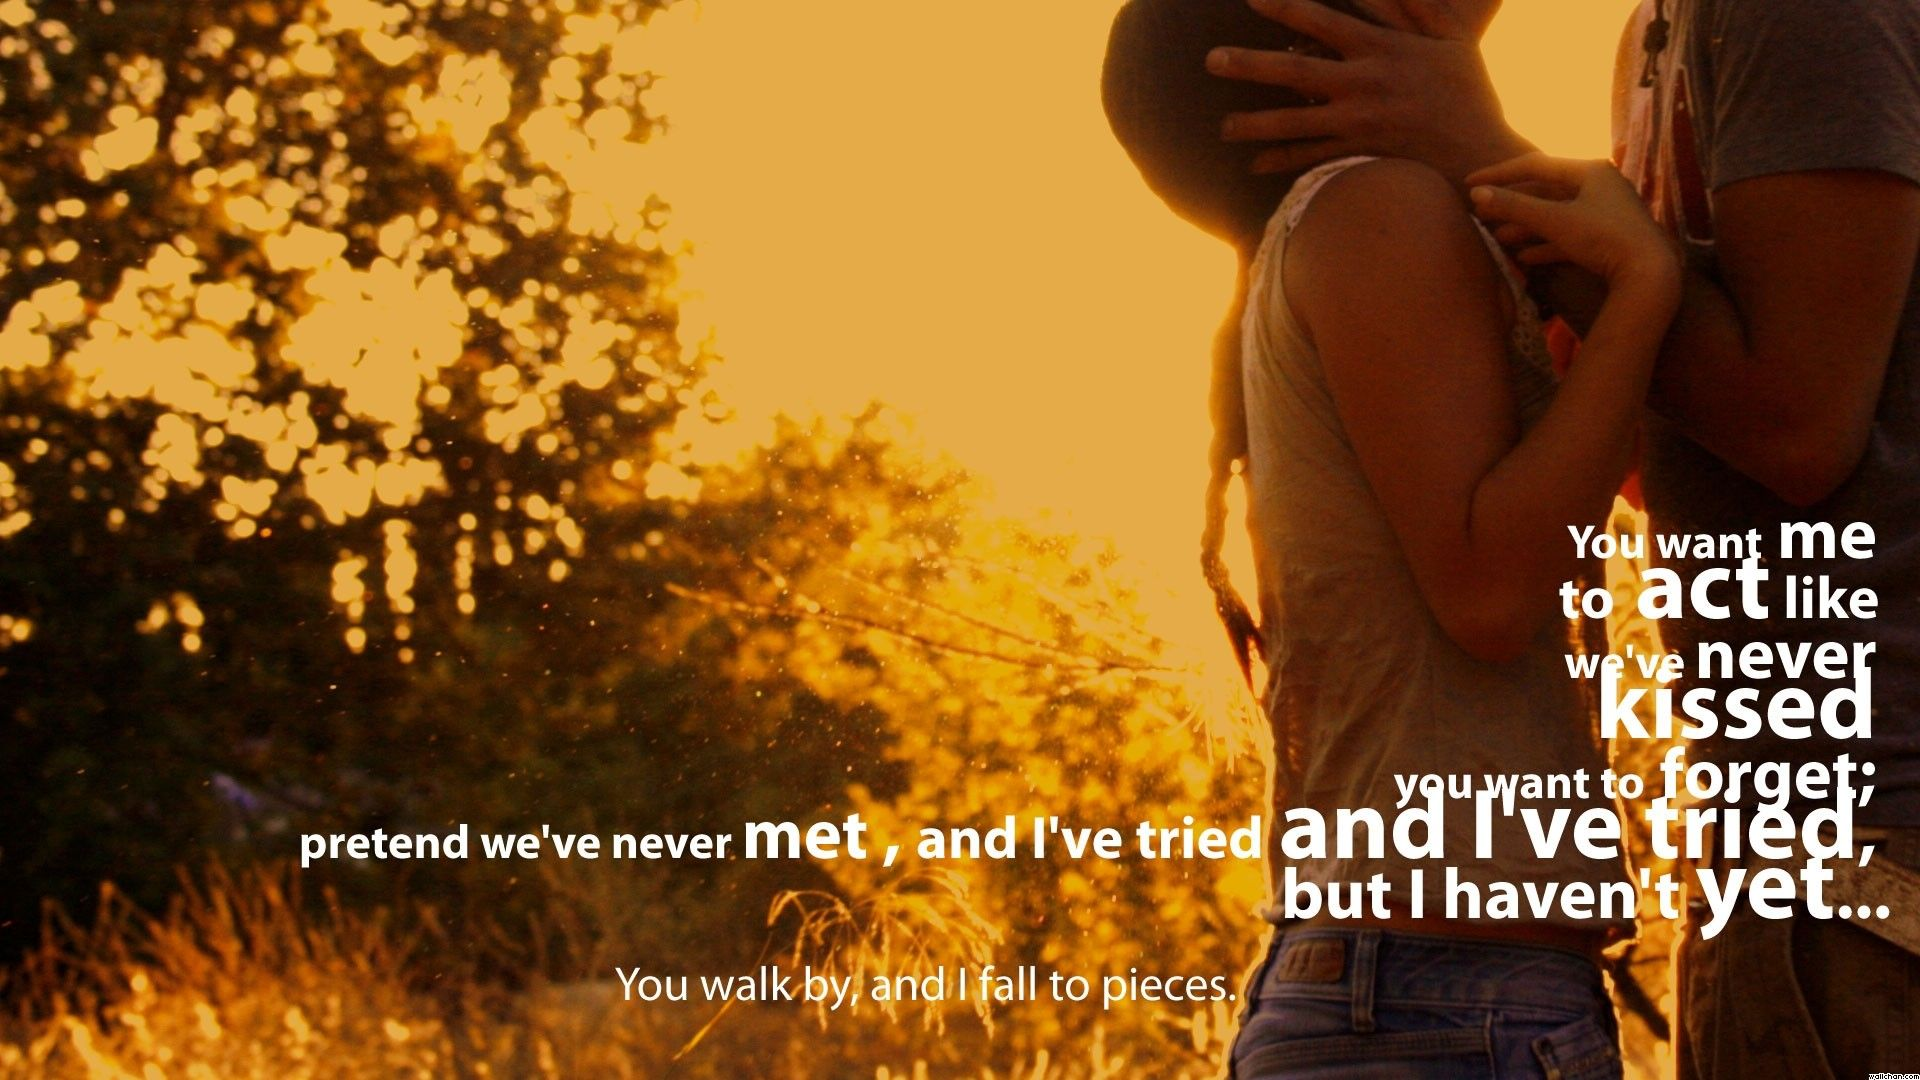 cool 47 cute love quote photos for someone special | inspirations